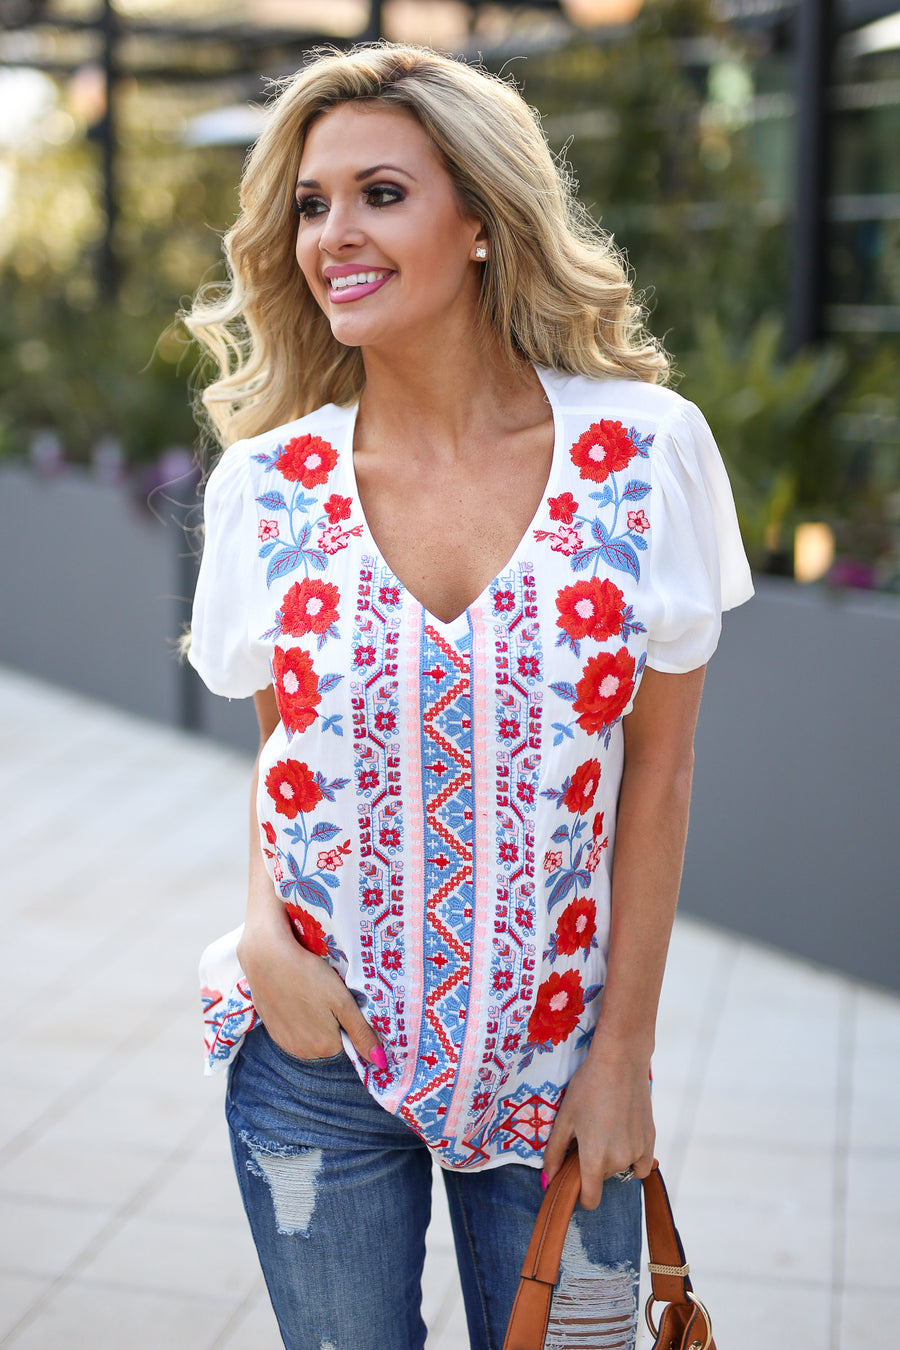 Cozumel Coastin' Top - Ivory v-neck floral embroidered top, outfit, Closet Candy Boutique